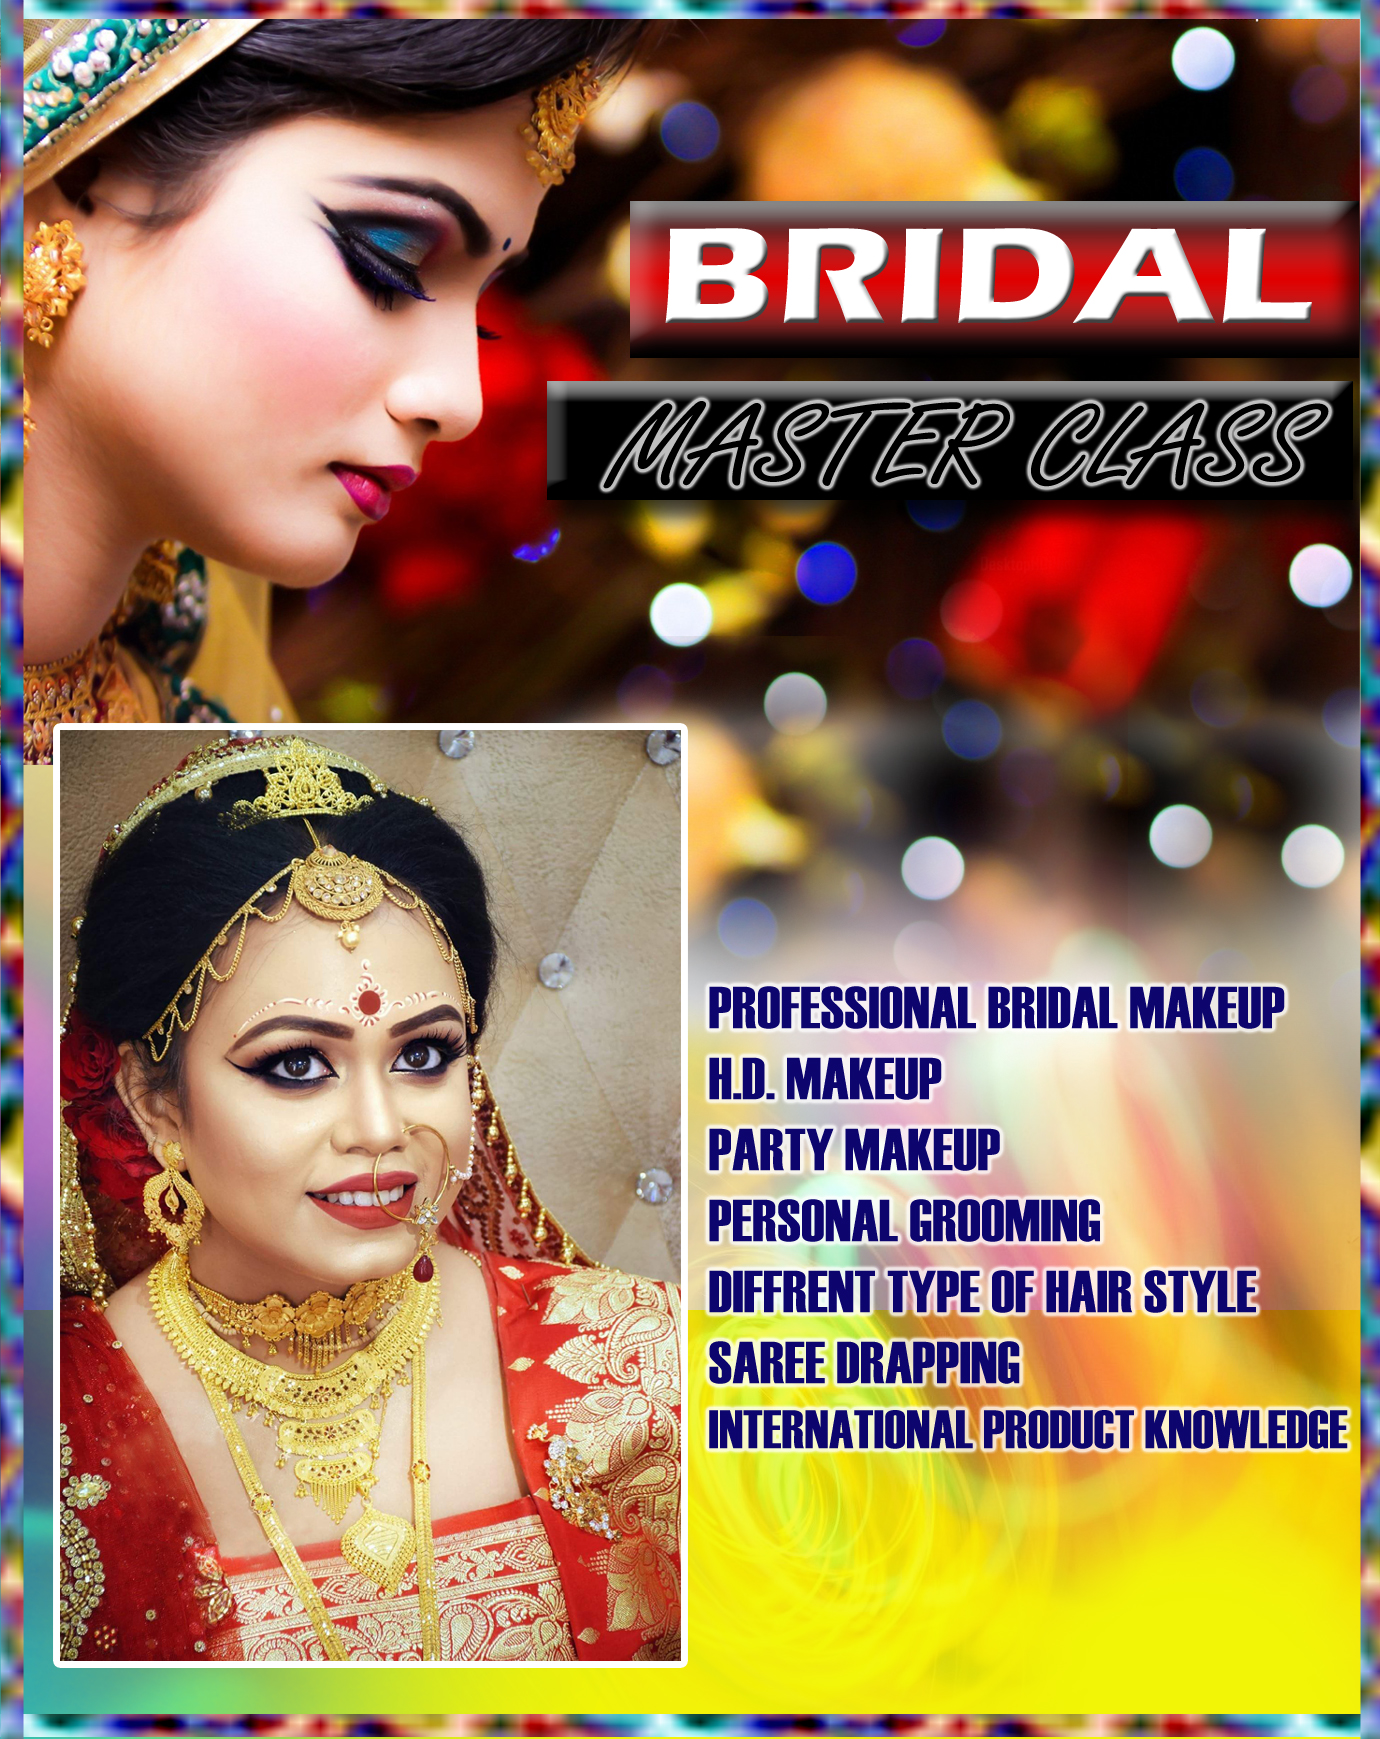 1515241361-bridal side 1 copy.jpg